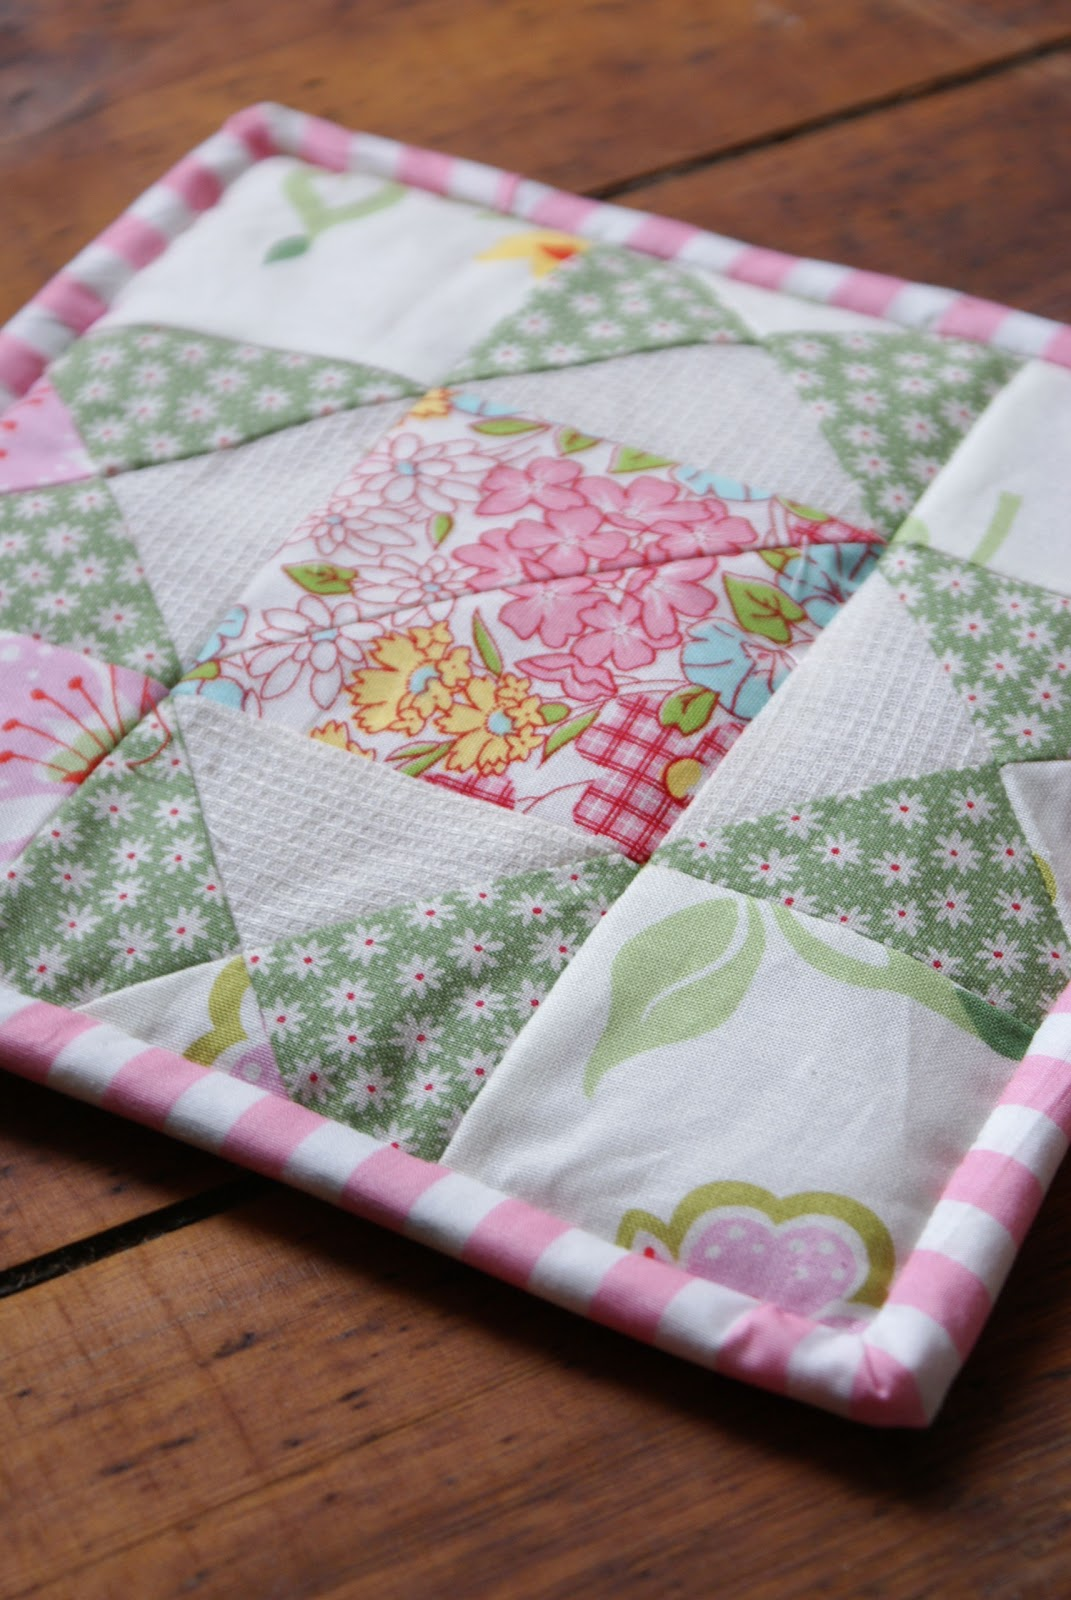 Sewing Project Fabric Basket Tutorial: A Quilt Blog By Jessie Fincham: Recent Sewing